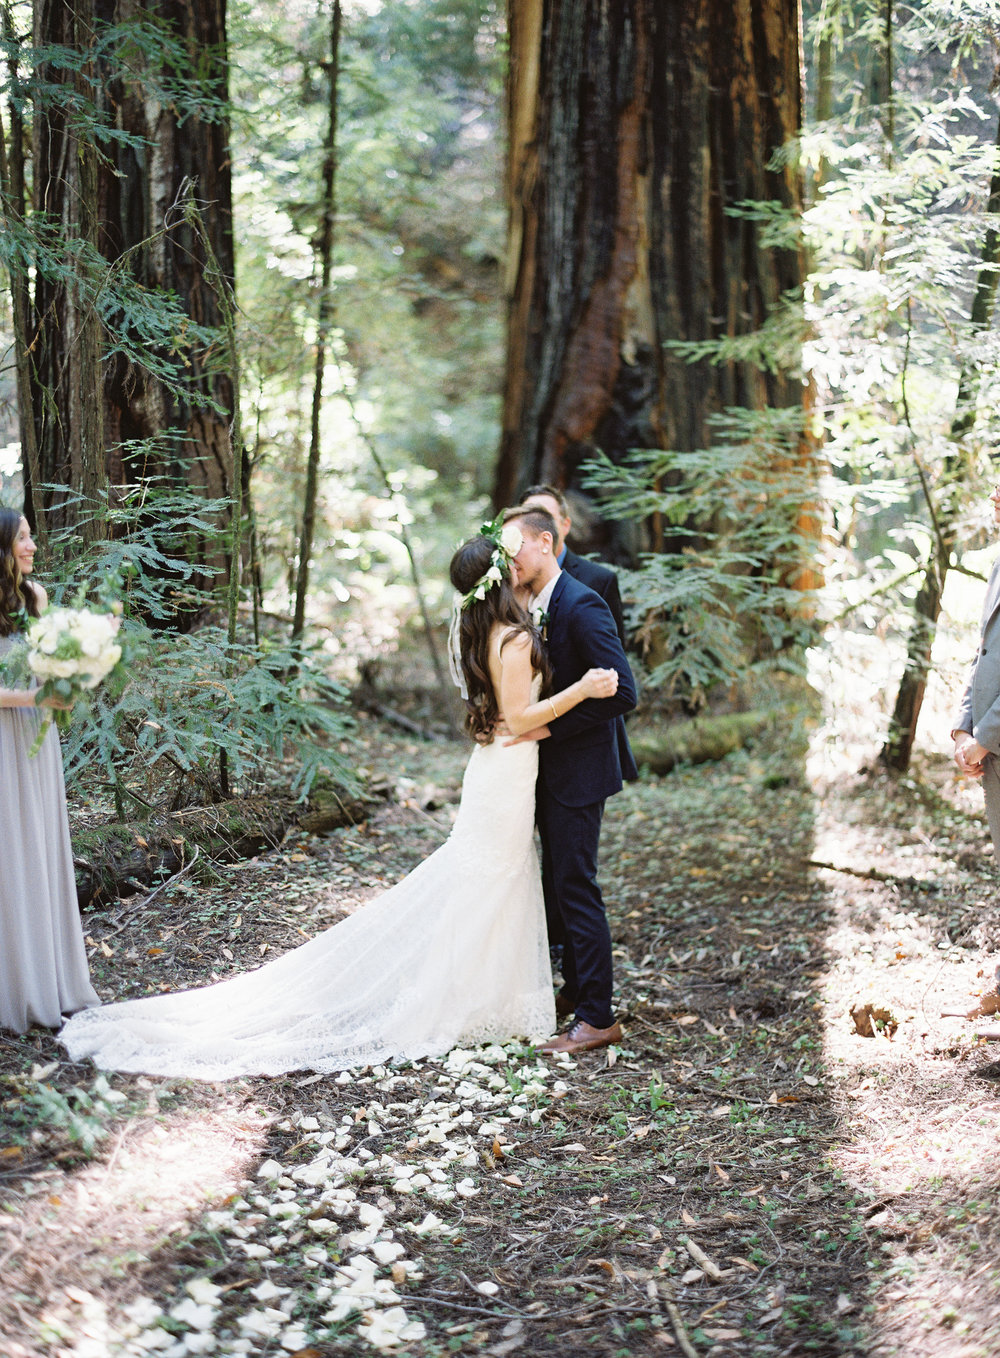 Meghan Mehan Photography | California Wedding Photographer | Napa California Wedding Photographer 082.jpg